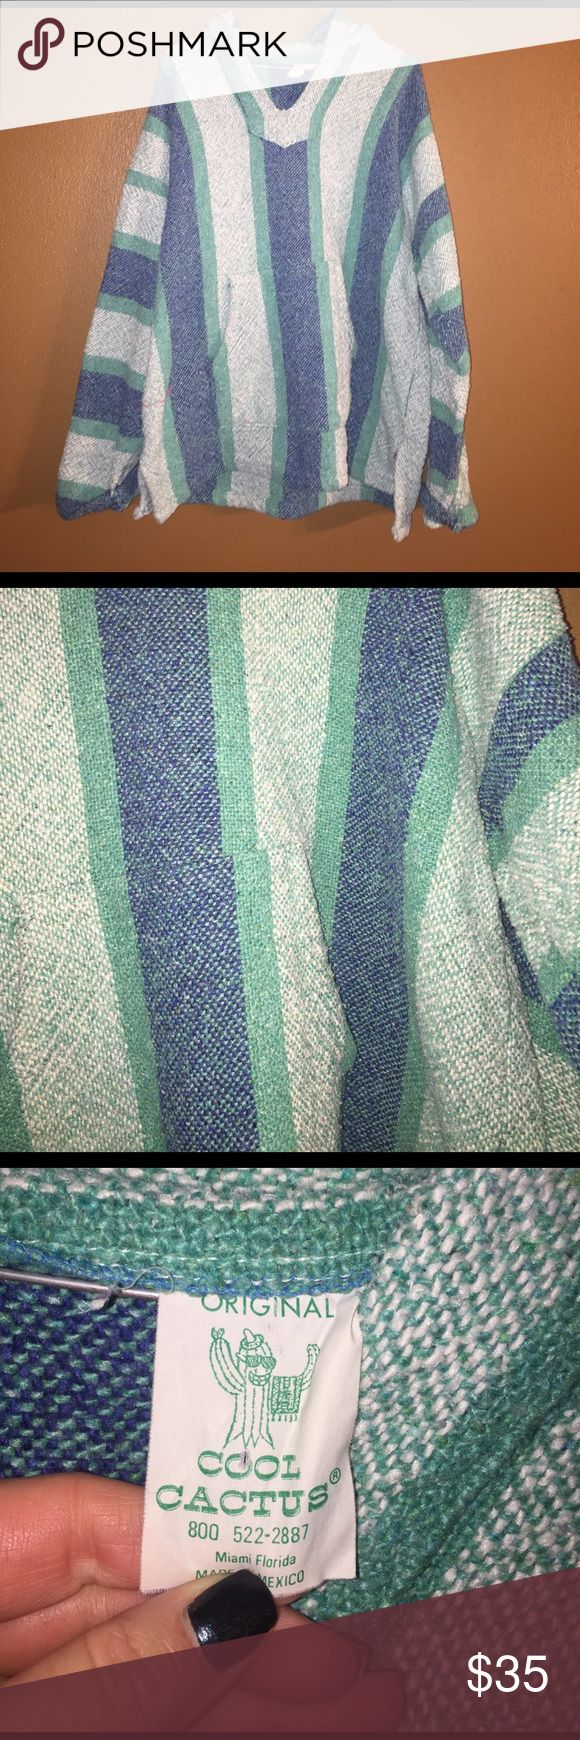 "Baja Drug Rug pullover Beautiful colors💙🏜🌊. Pullover aka ""Drug Rug"" Excellent condition! Fits large or loose medium. Hooded. Cool Cactus (Vintage) Tops Sweatshirts & Hoodies"